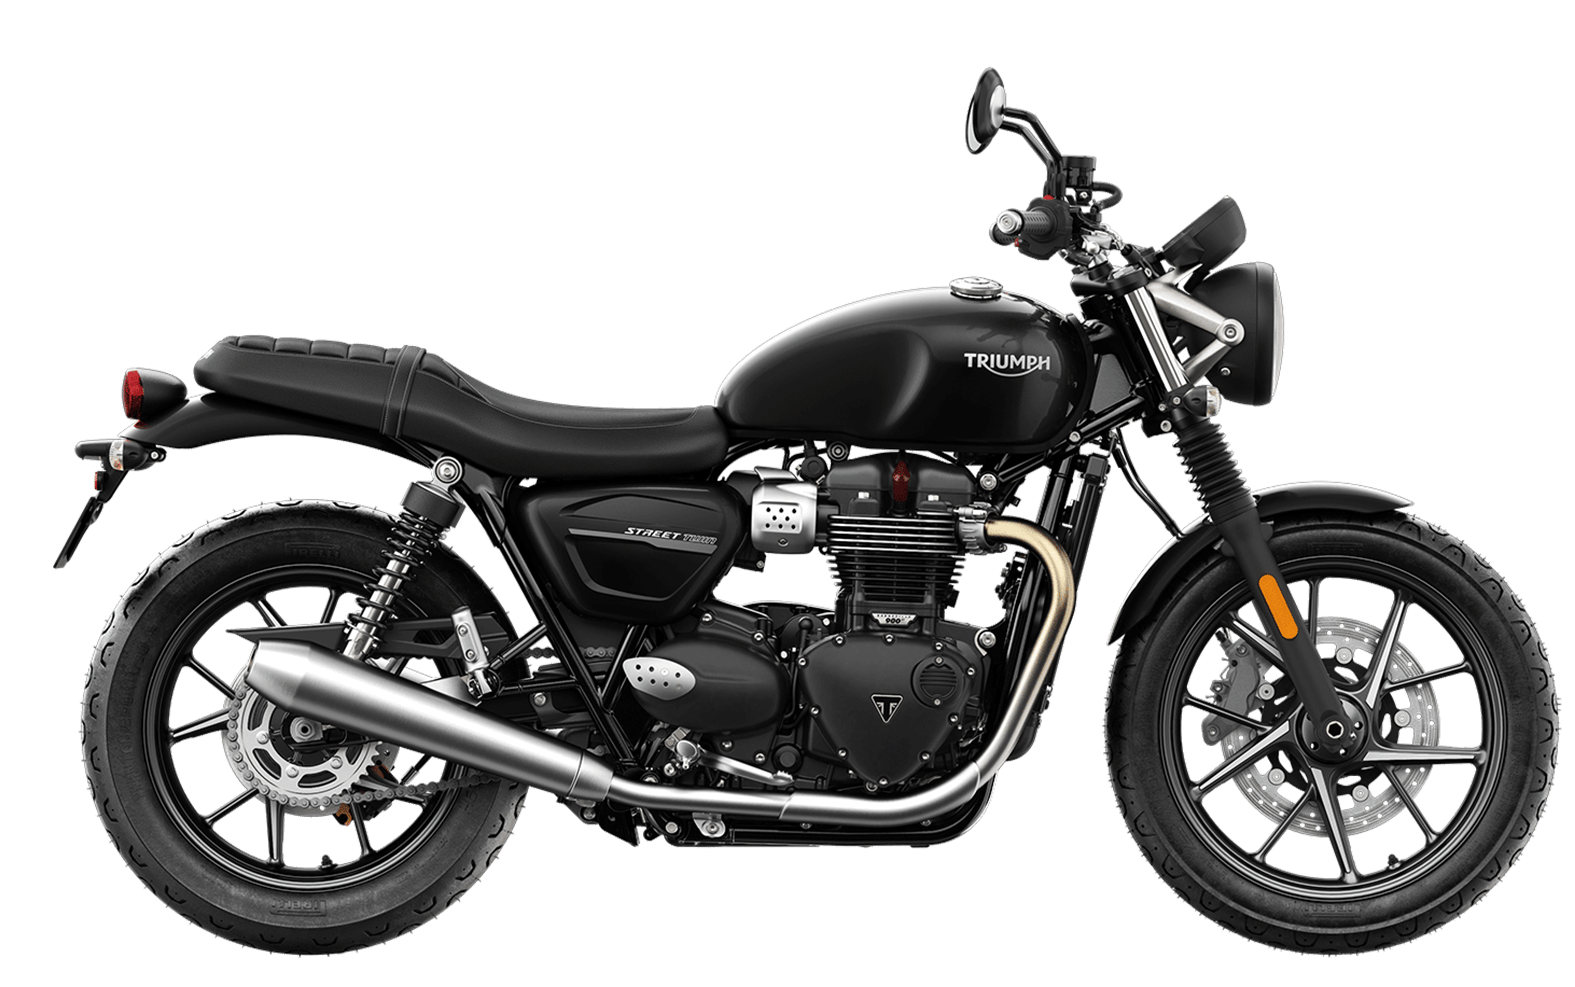 2019 Triumph Street Twin in Jet Black